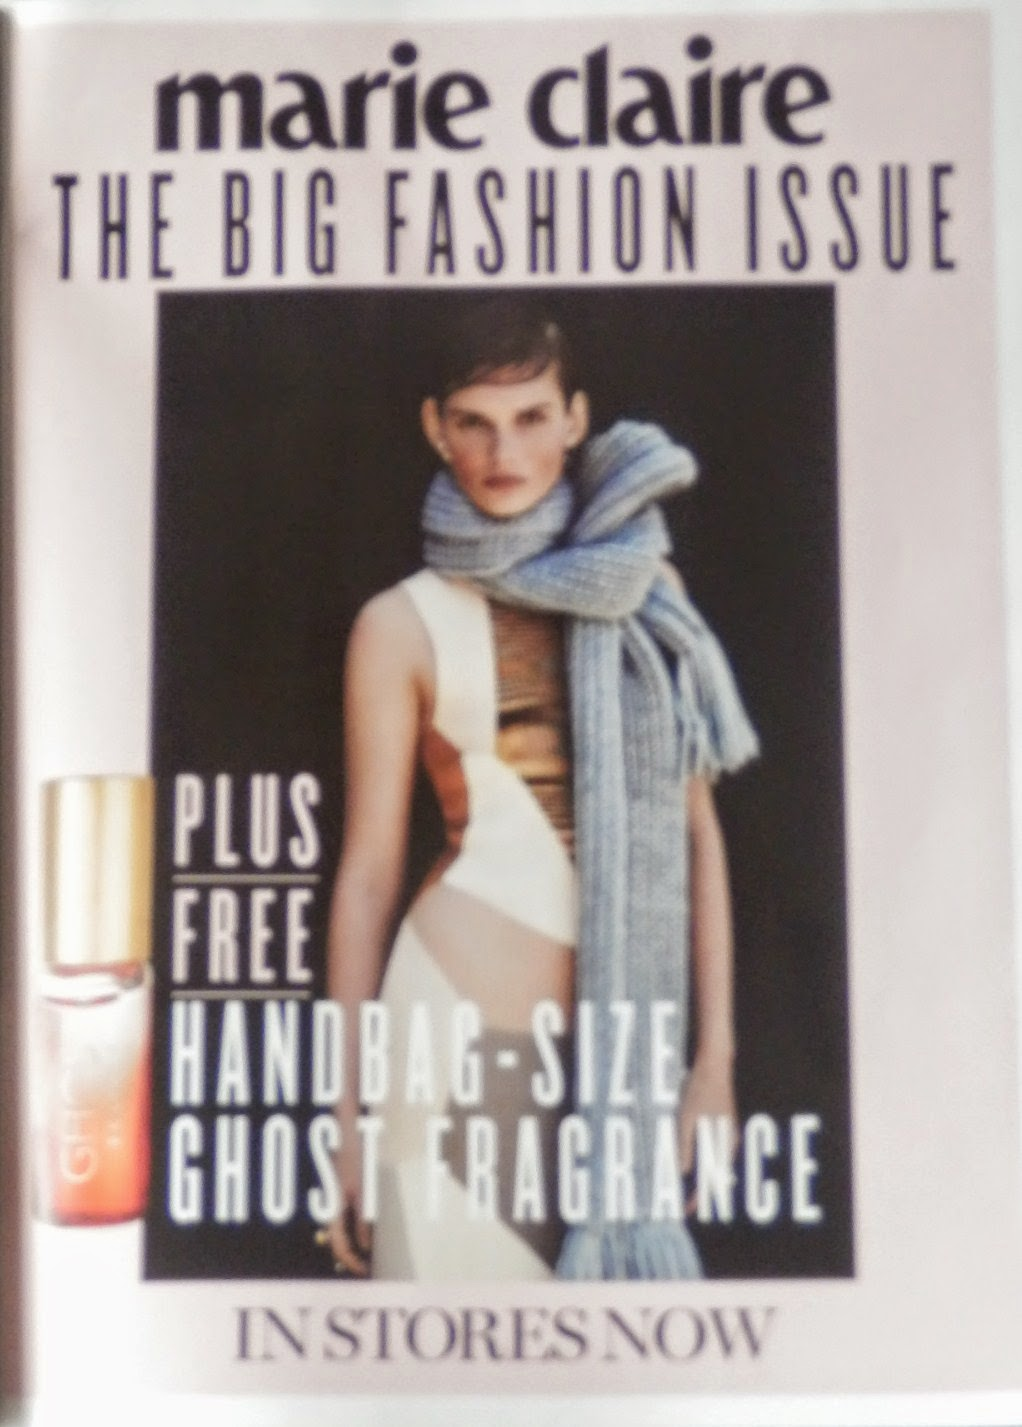 Marie Claire Magazine Freebie - Ghost Fragrance